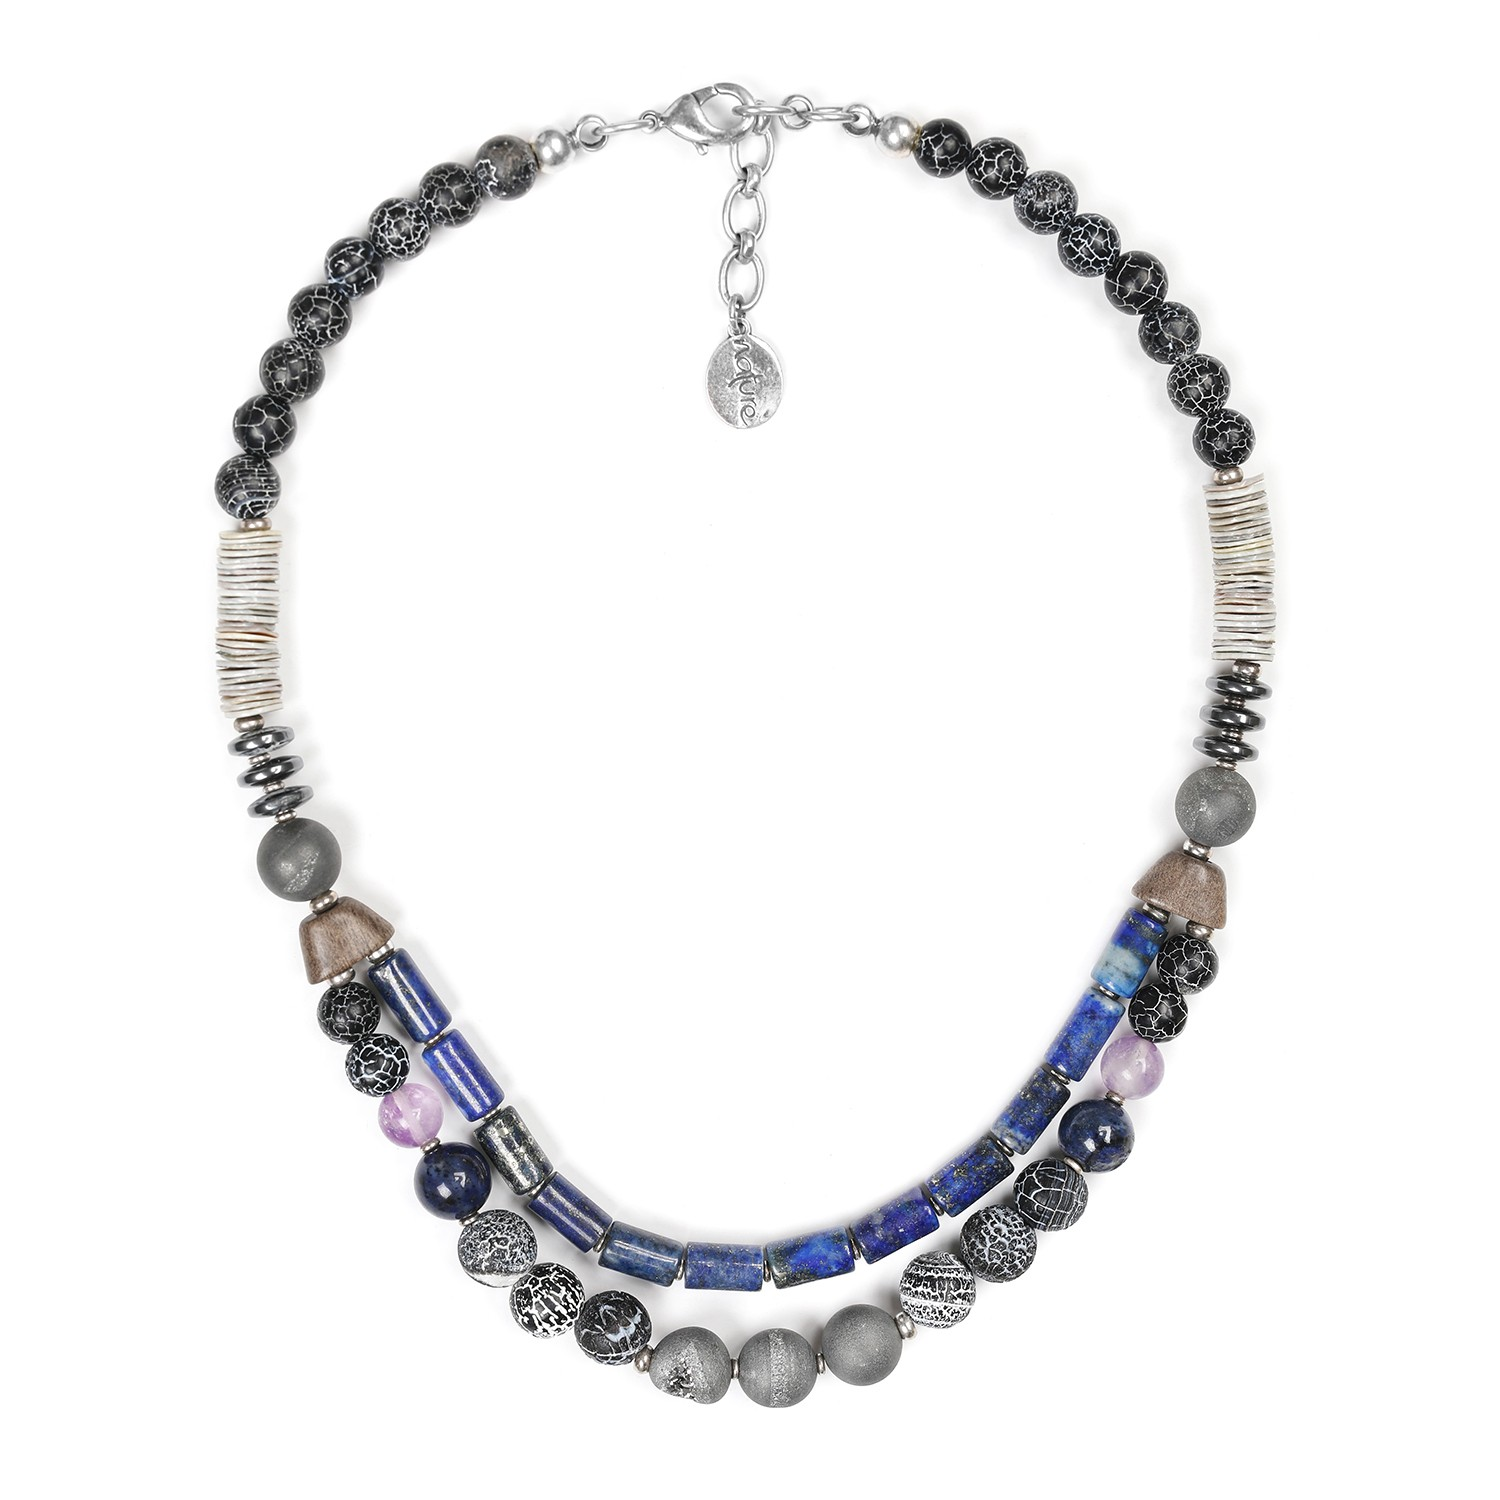 BAIKAL 2-row necklace